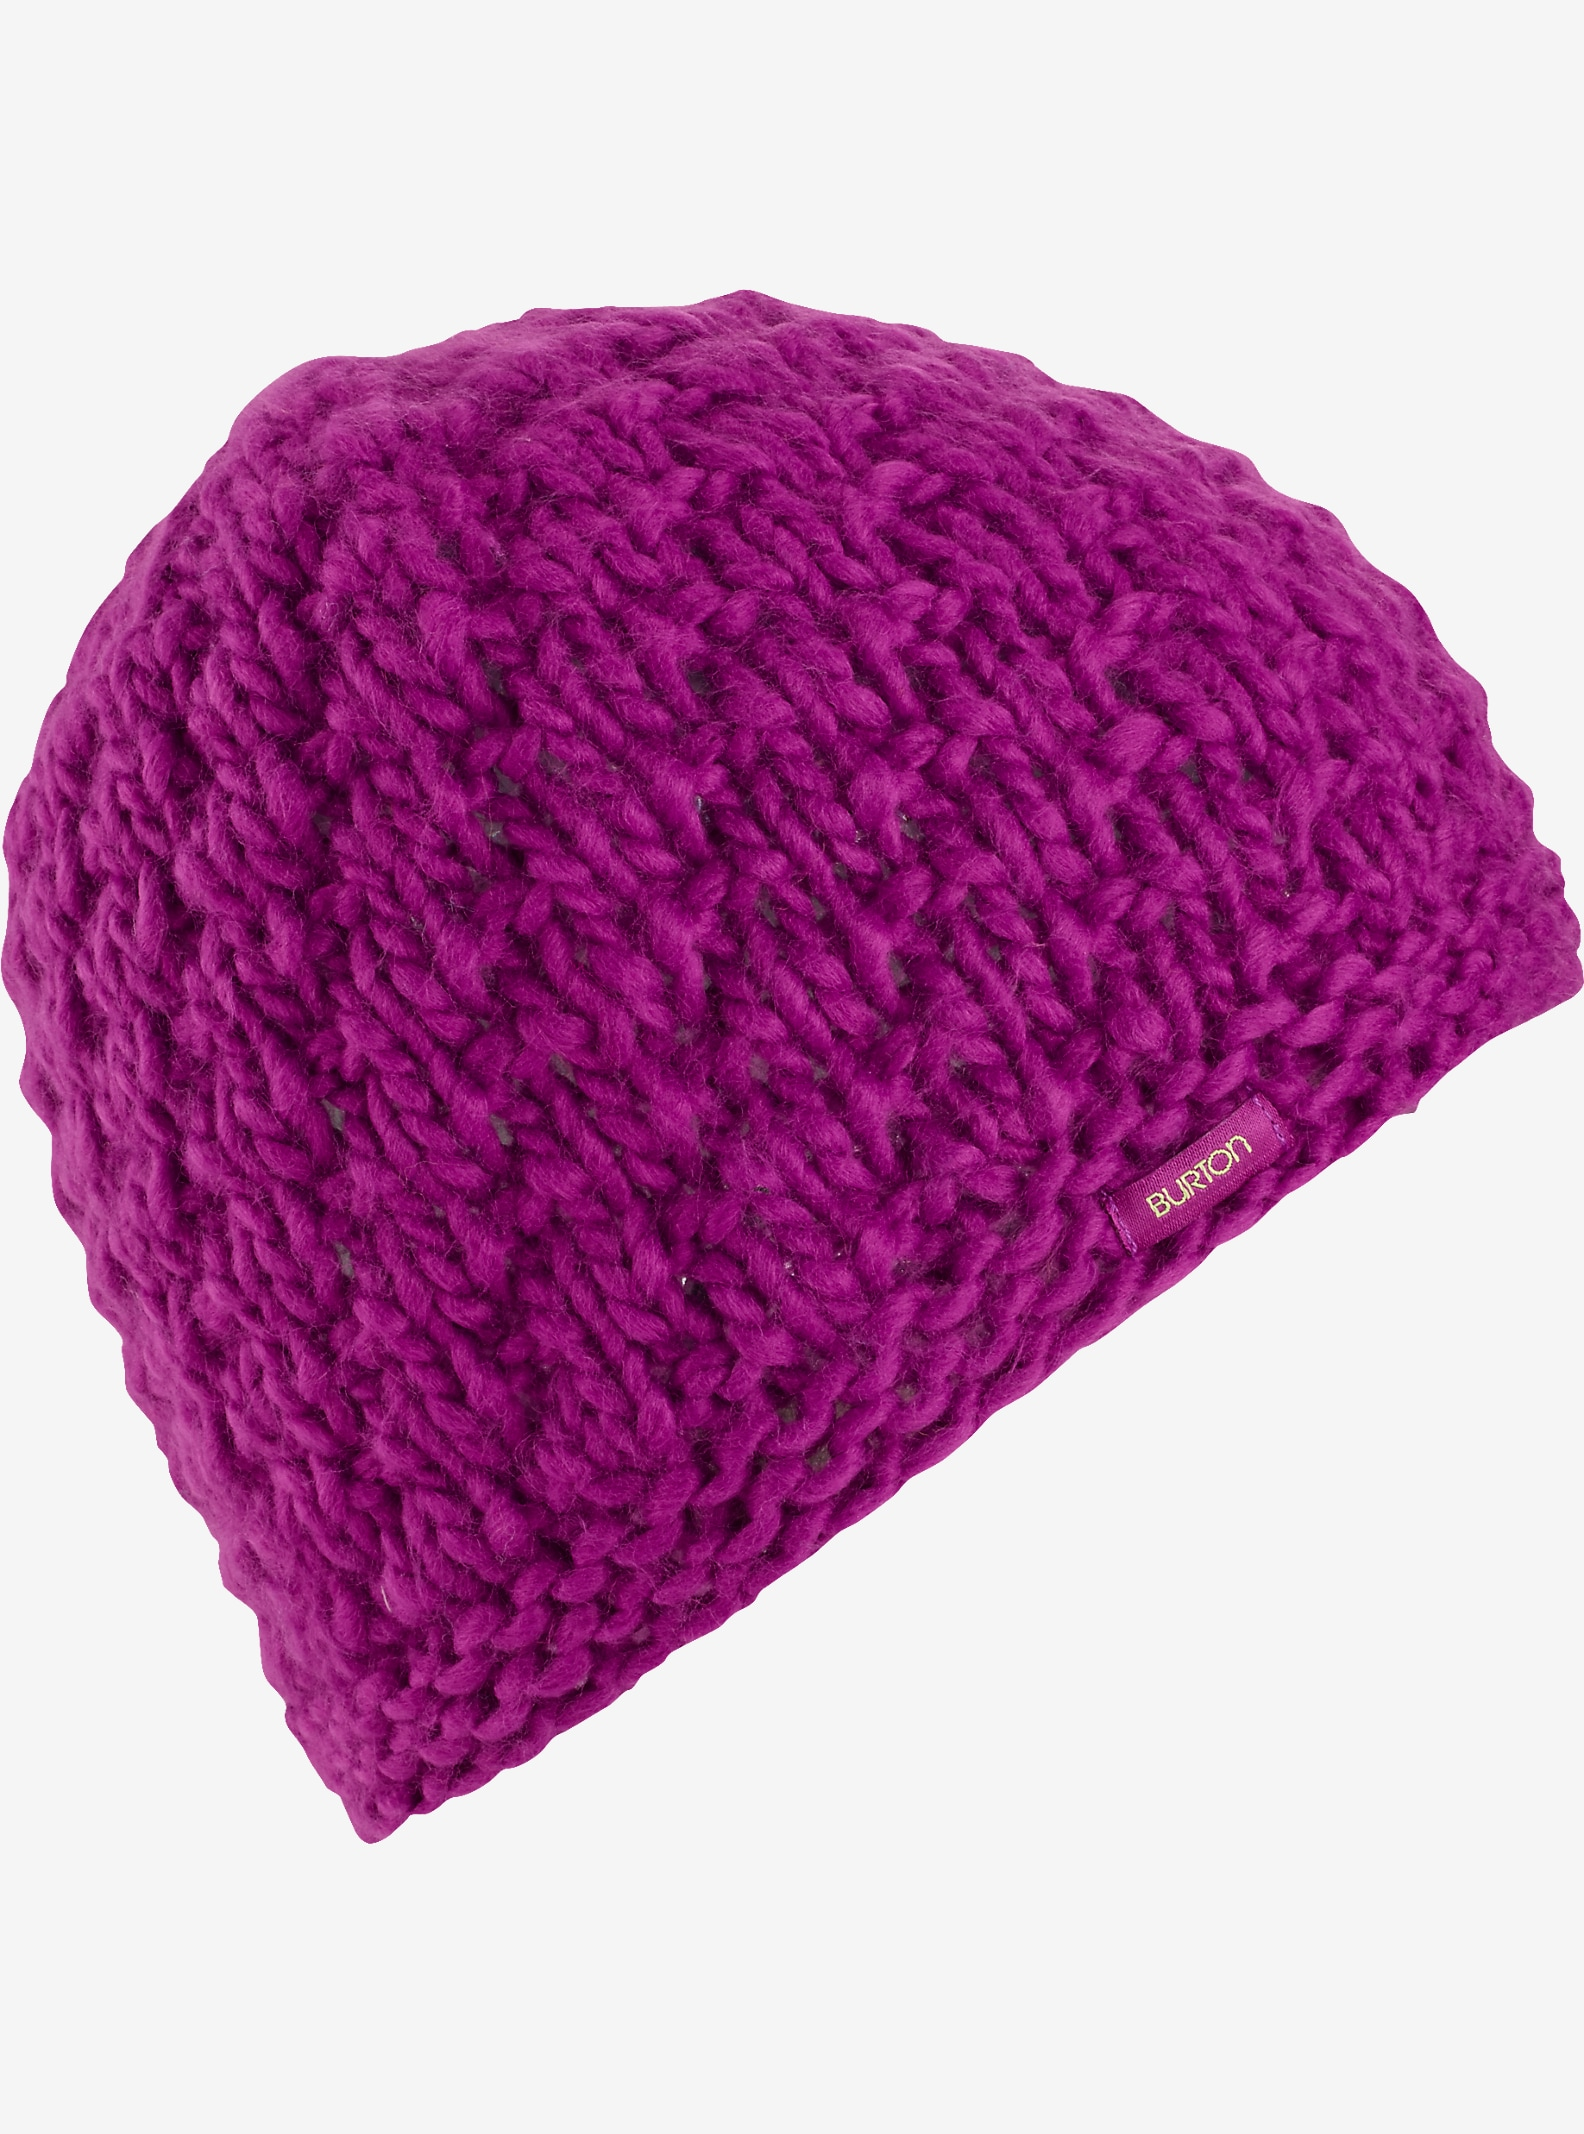 Burton Girls' Lil Bertha Beanie shown in Grapeseed